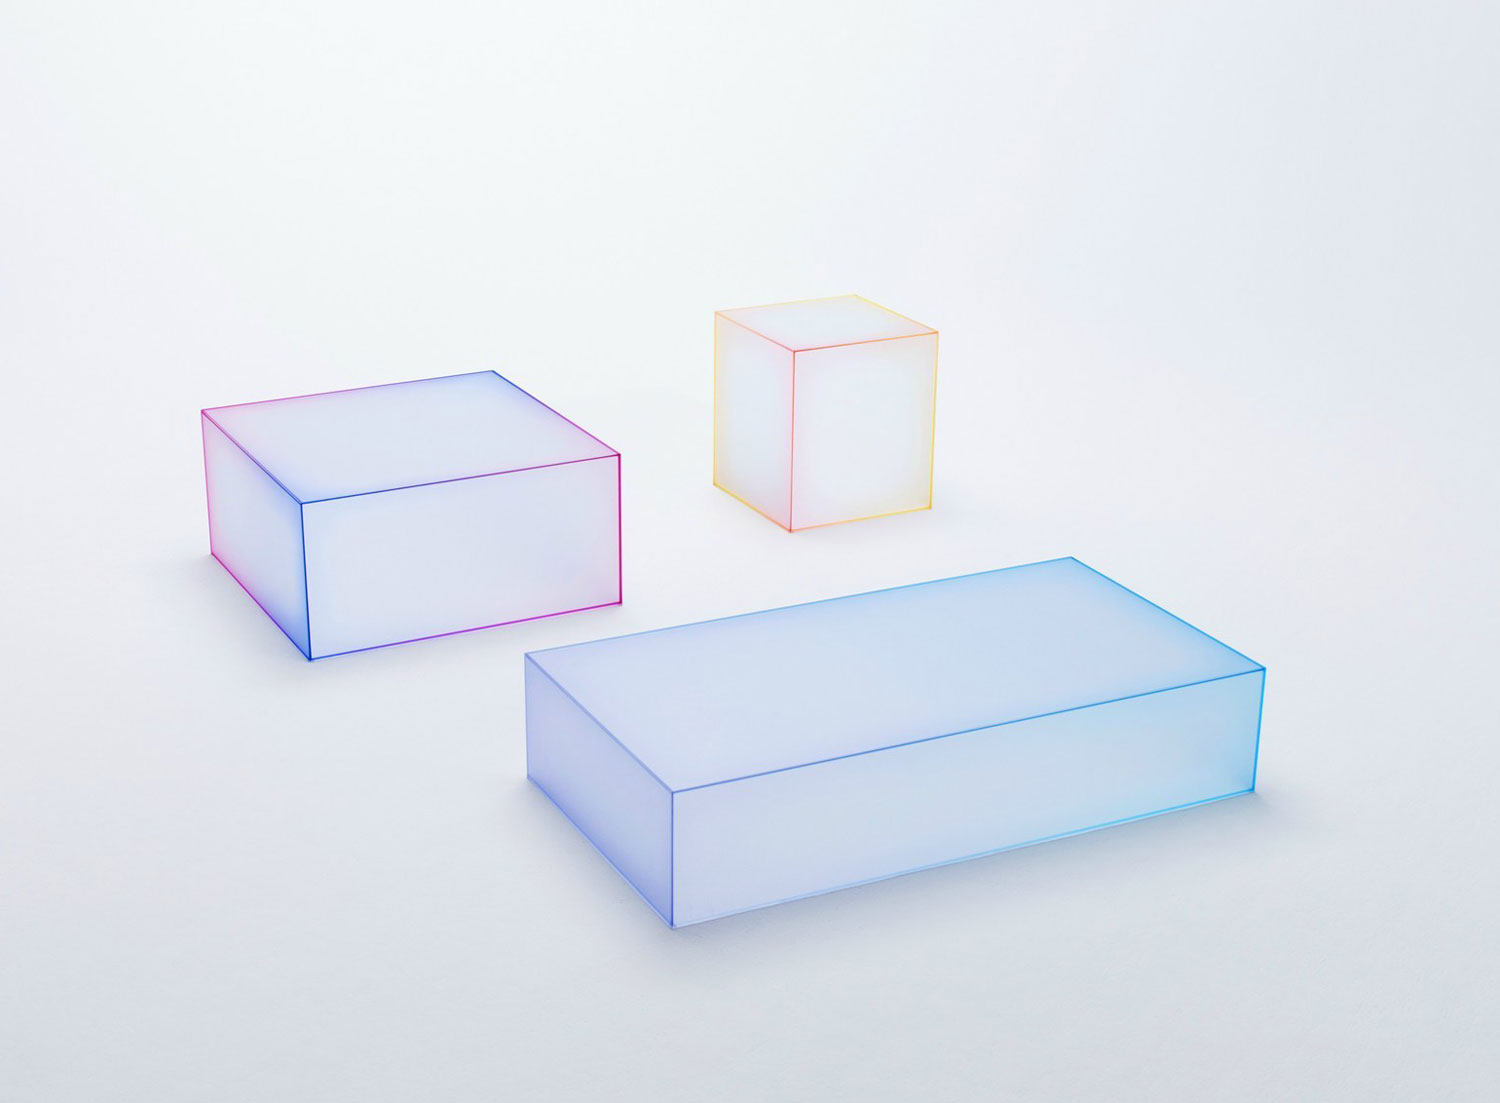 nendo soft tables | #MILANTRACE2015 by Yellowtrace